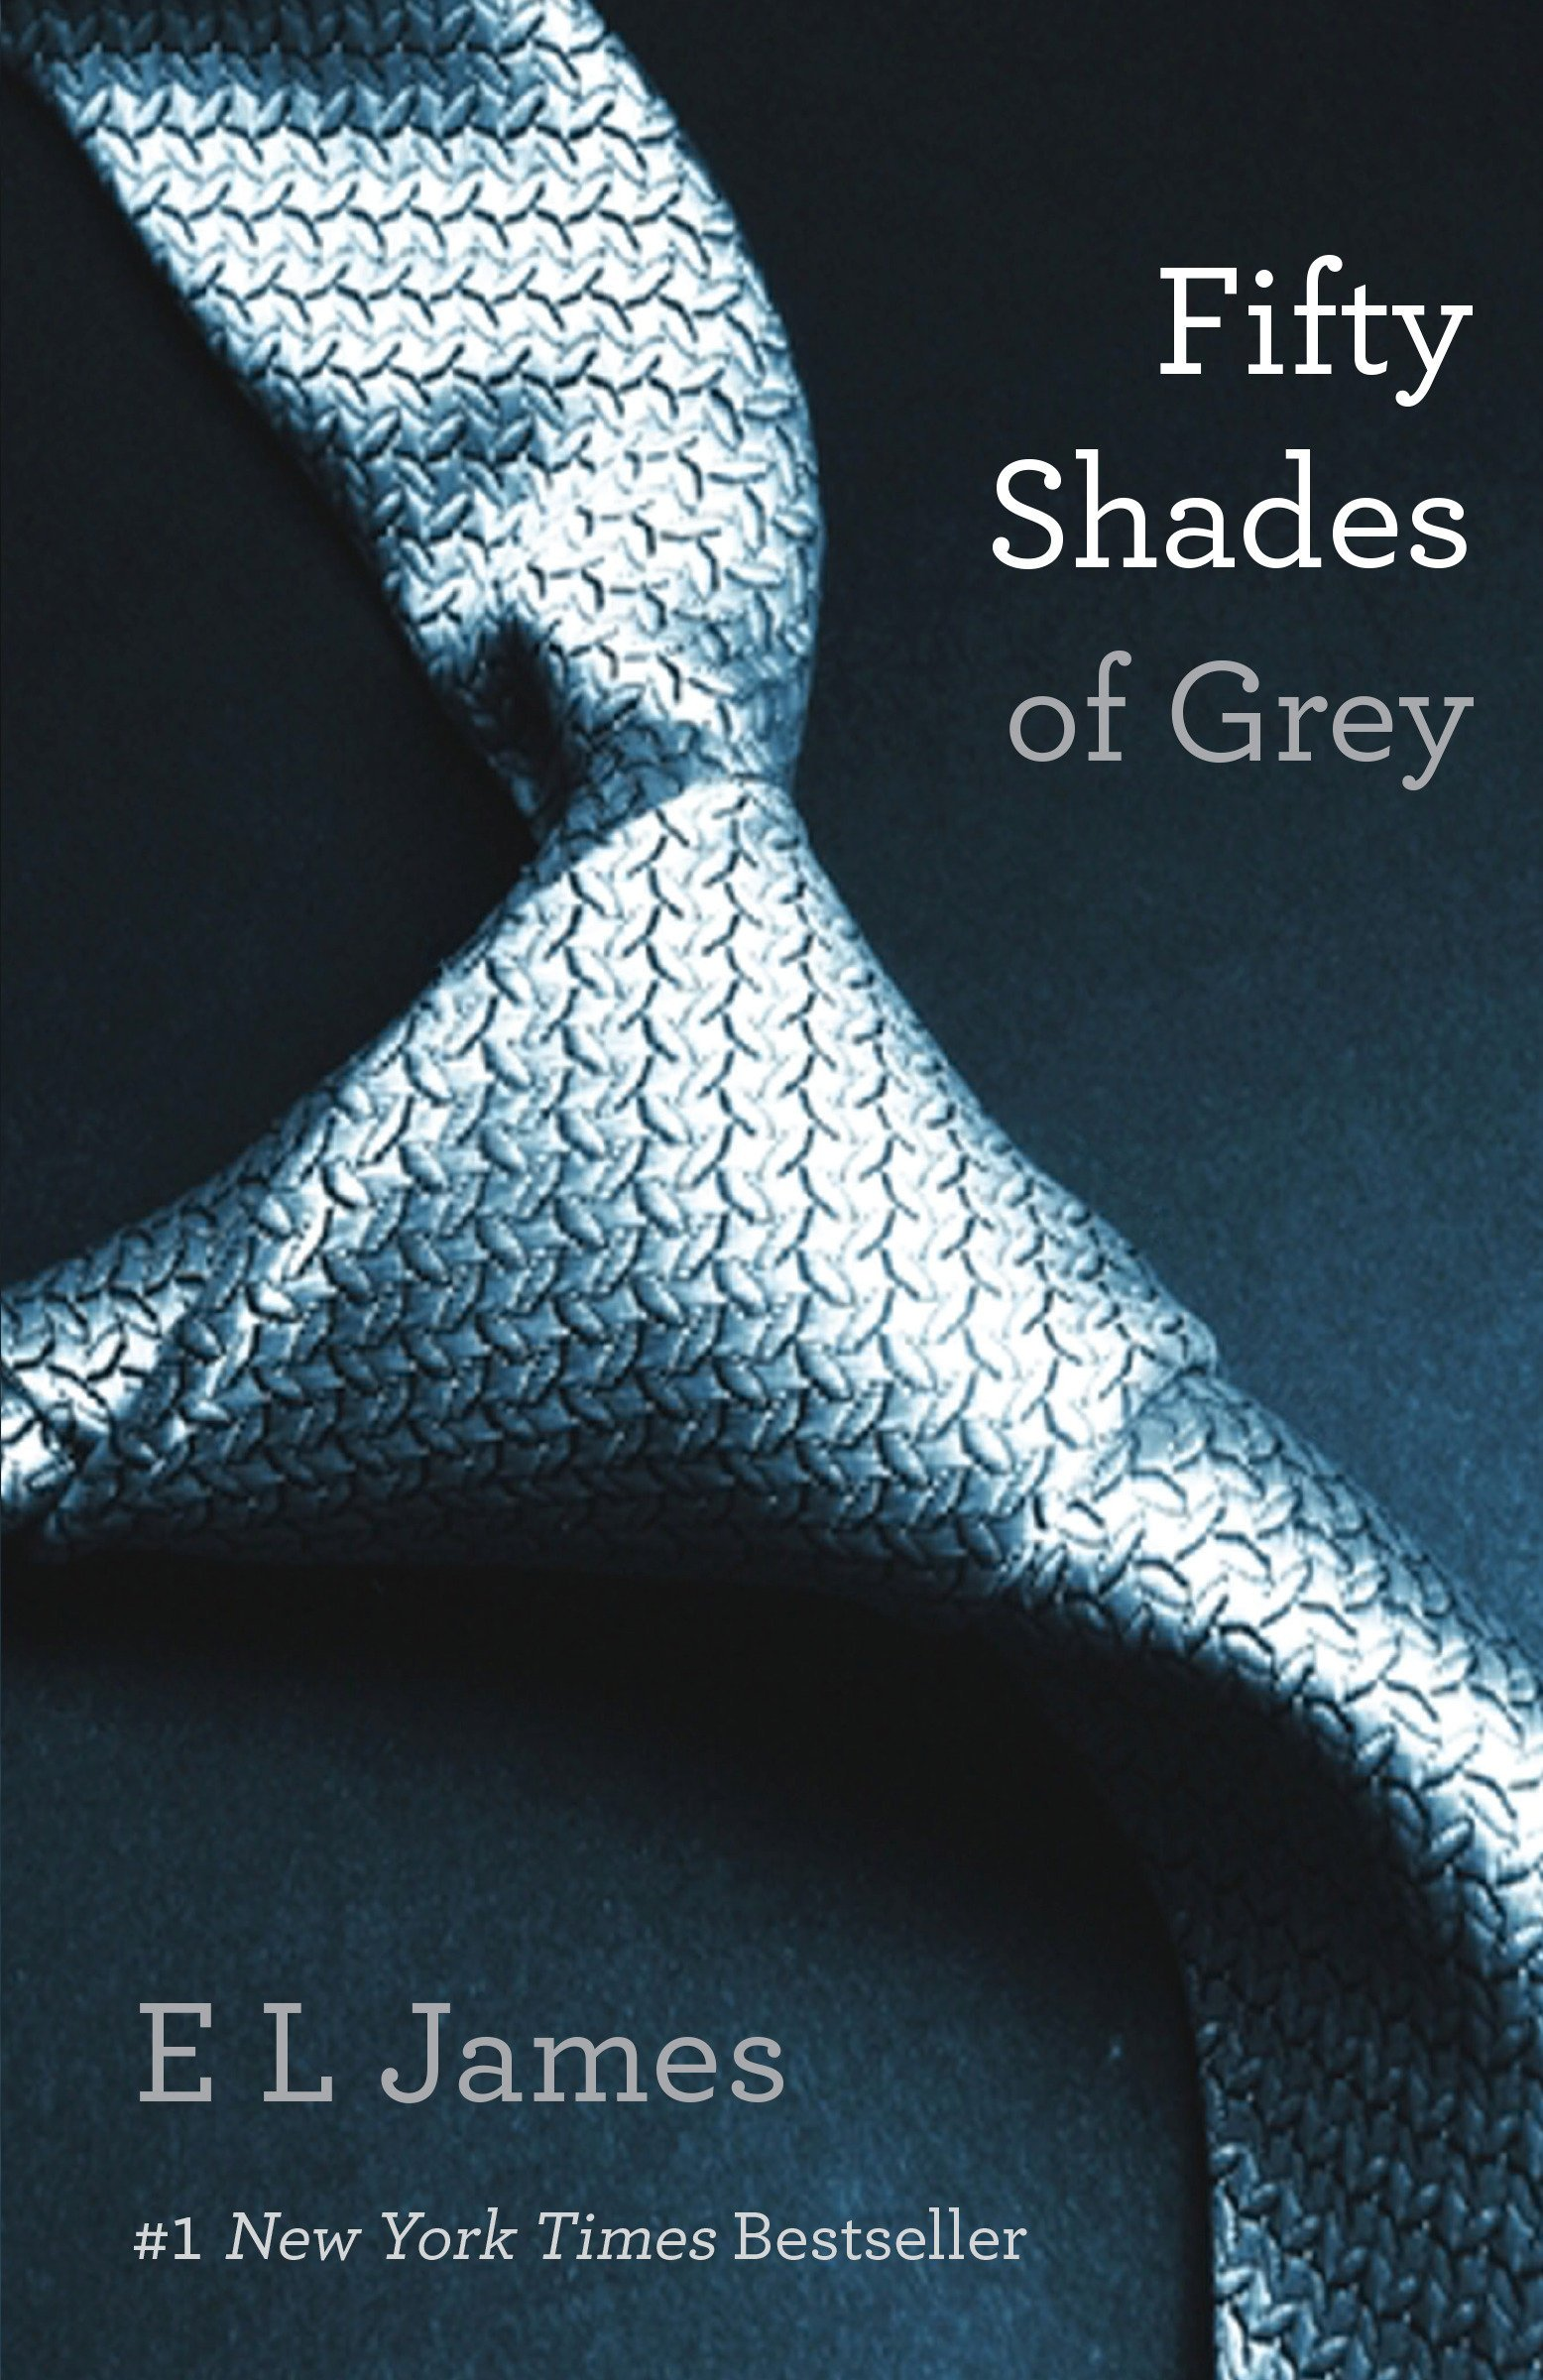 Fifty Shades of Grey: Book One of the Fifty Shades Trilogy (Fifty Shades of  Grey Series): E L James: 8601400331972: Amazon.com: Books